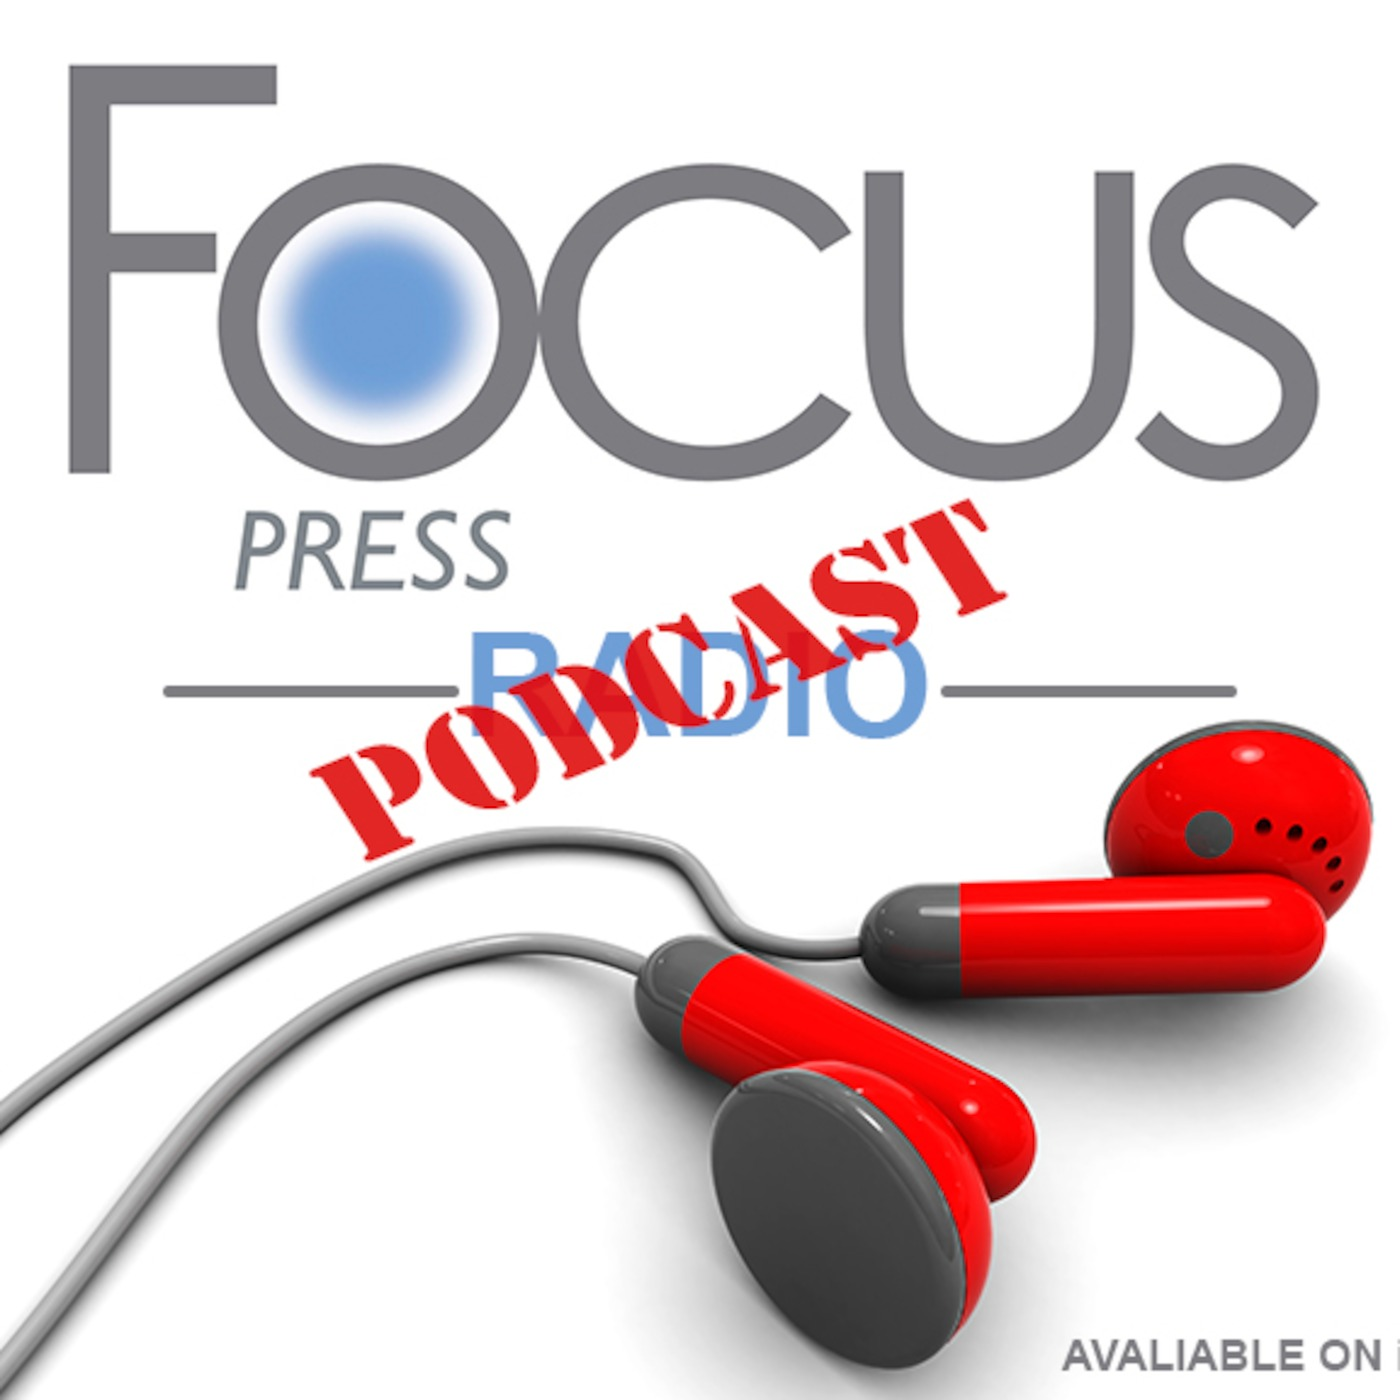 Focus Press Inc